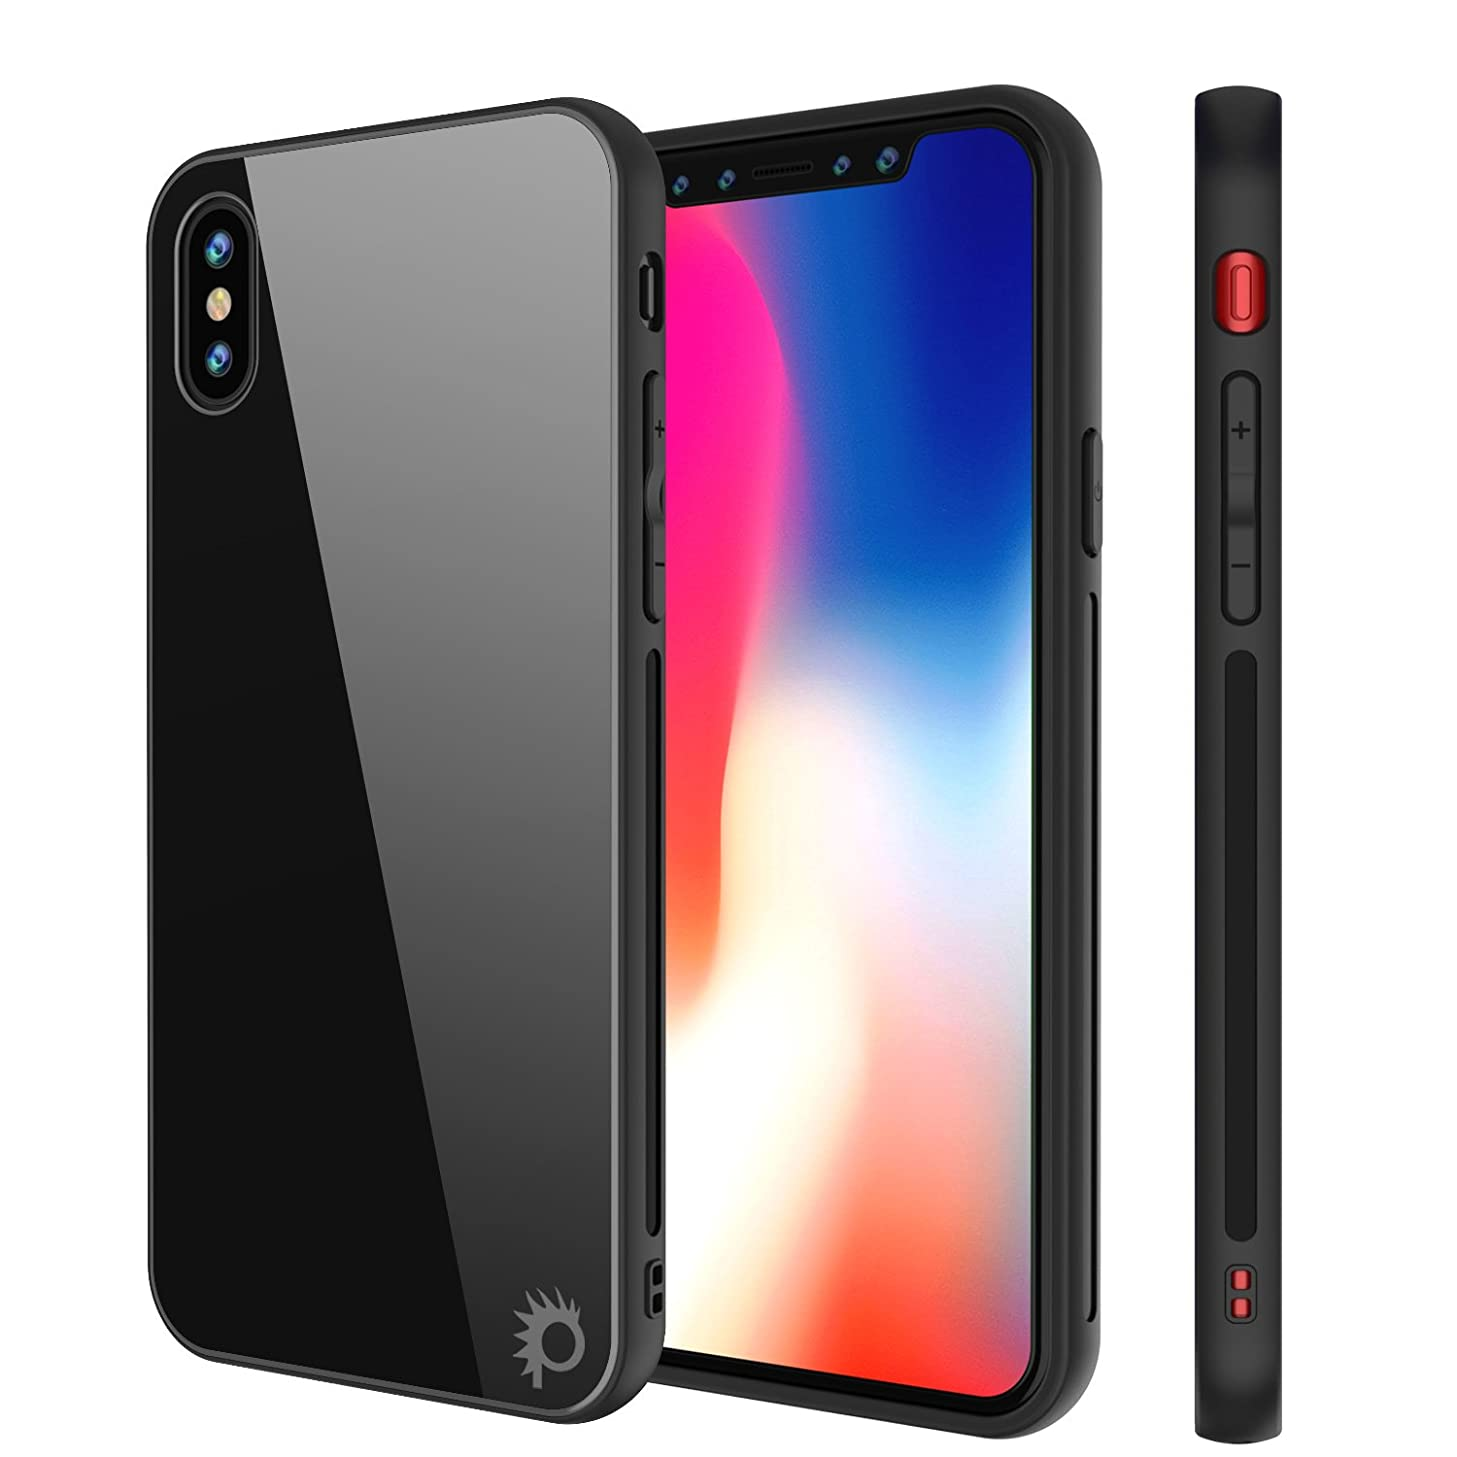 iPhone X Case, Punkcase GlassShield Ultra Thin Protective 9H Full Body Tempered Glass Cover W/Drop Protection & Non Slip Grip for Apple iPhone 10 (Black)